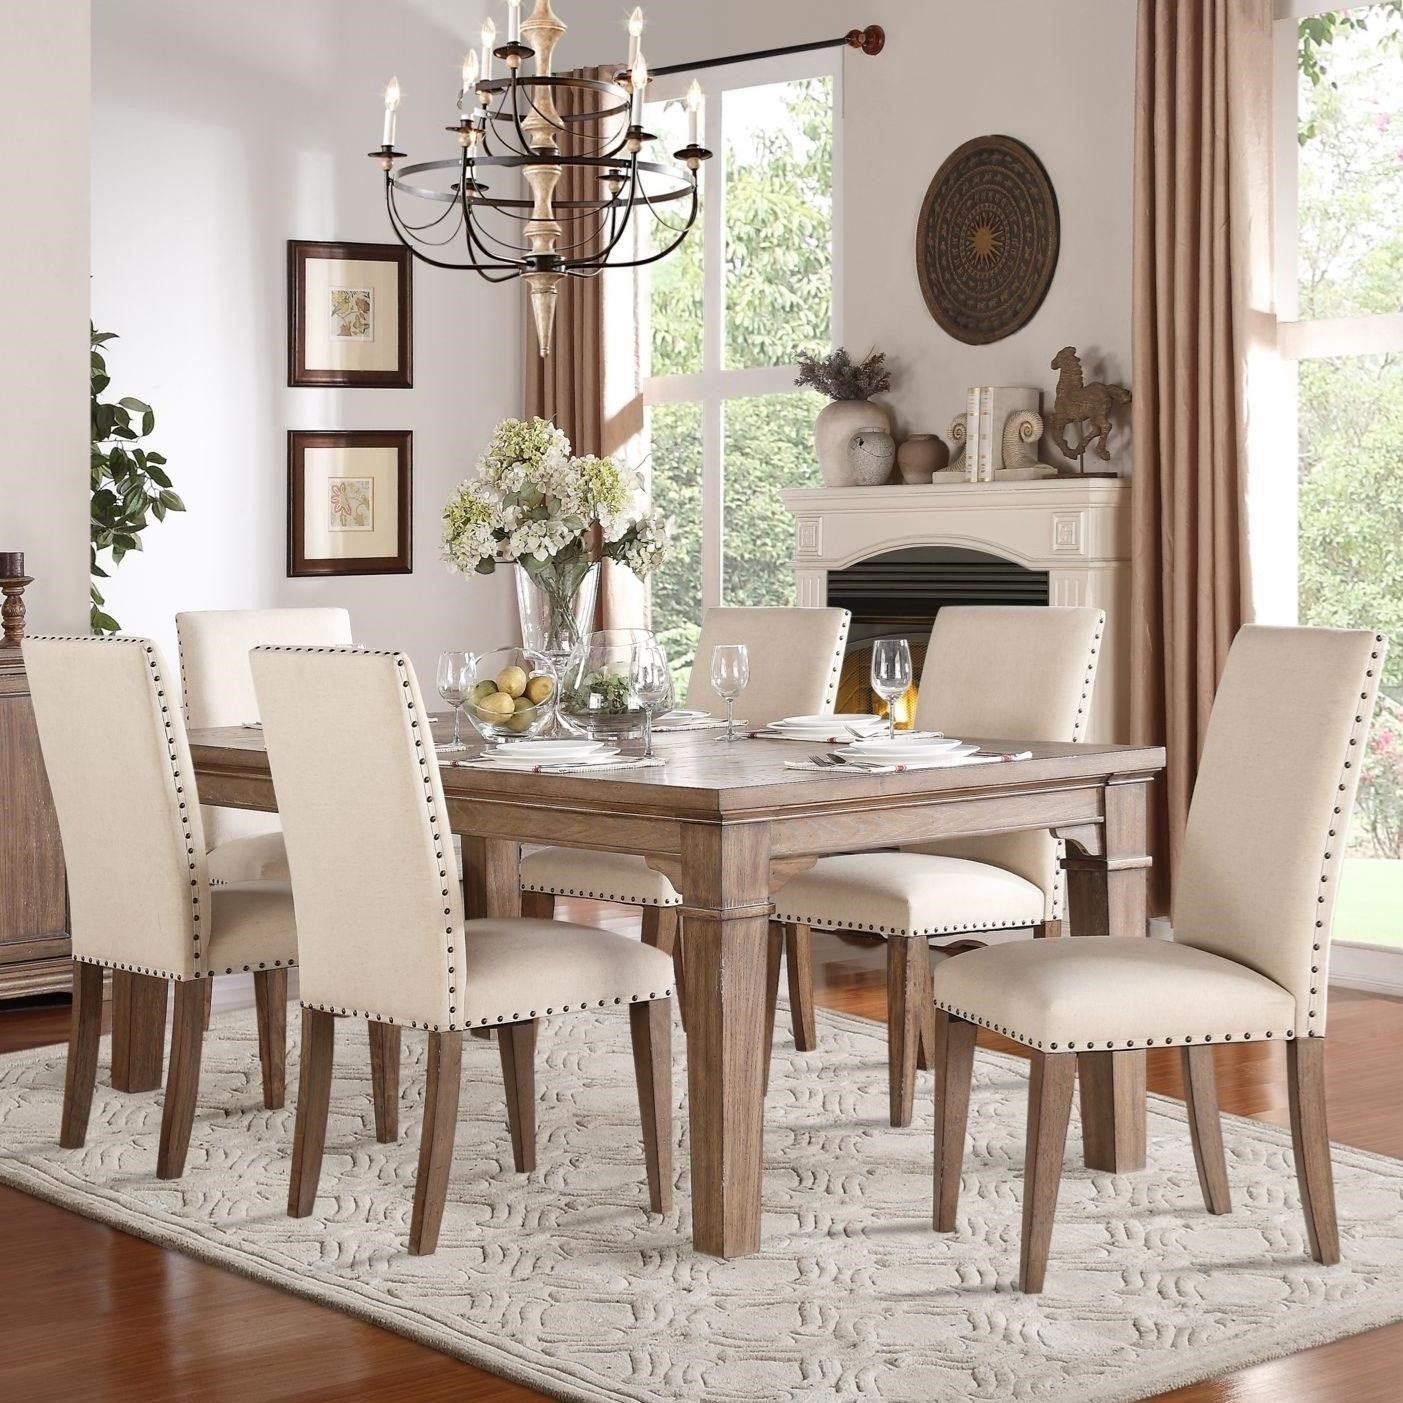 Vintage Living Room Chairs Luxury Mill Valley Relaxed Vintage Dining Table And Chair In 2020 Rectangular Dining Room Table Dining Room Table Chairs Vintage Dining Room